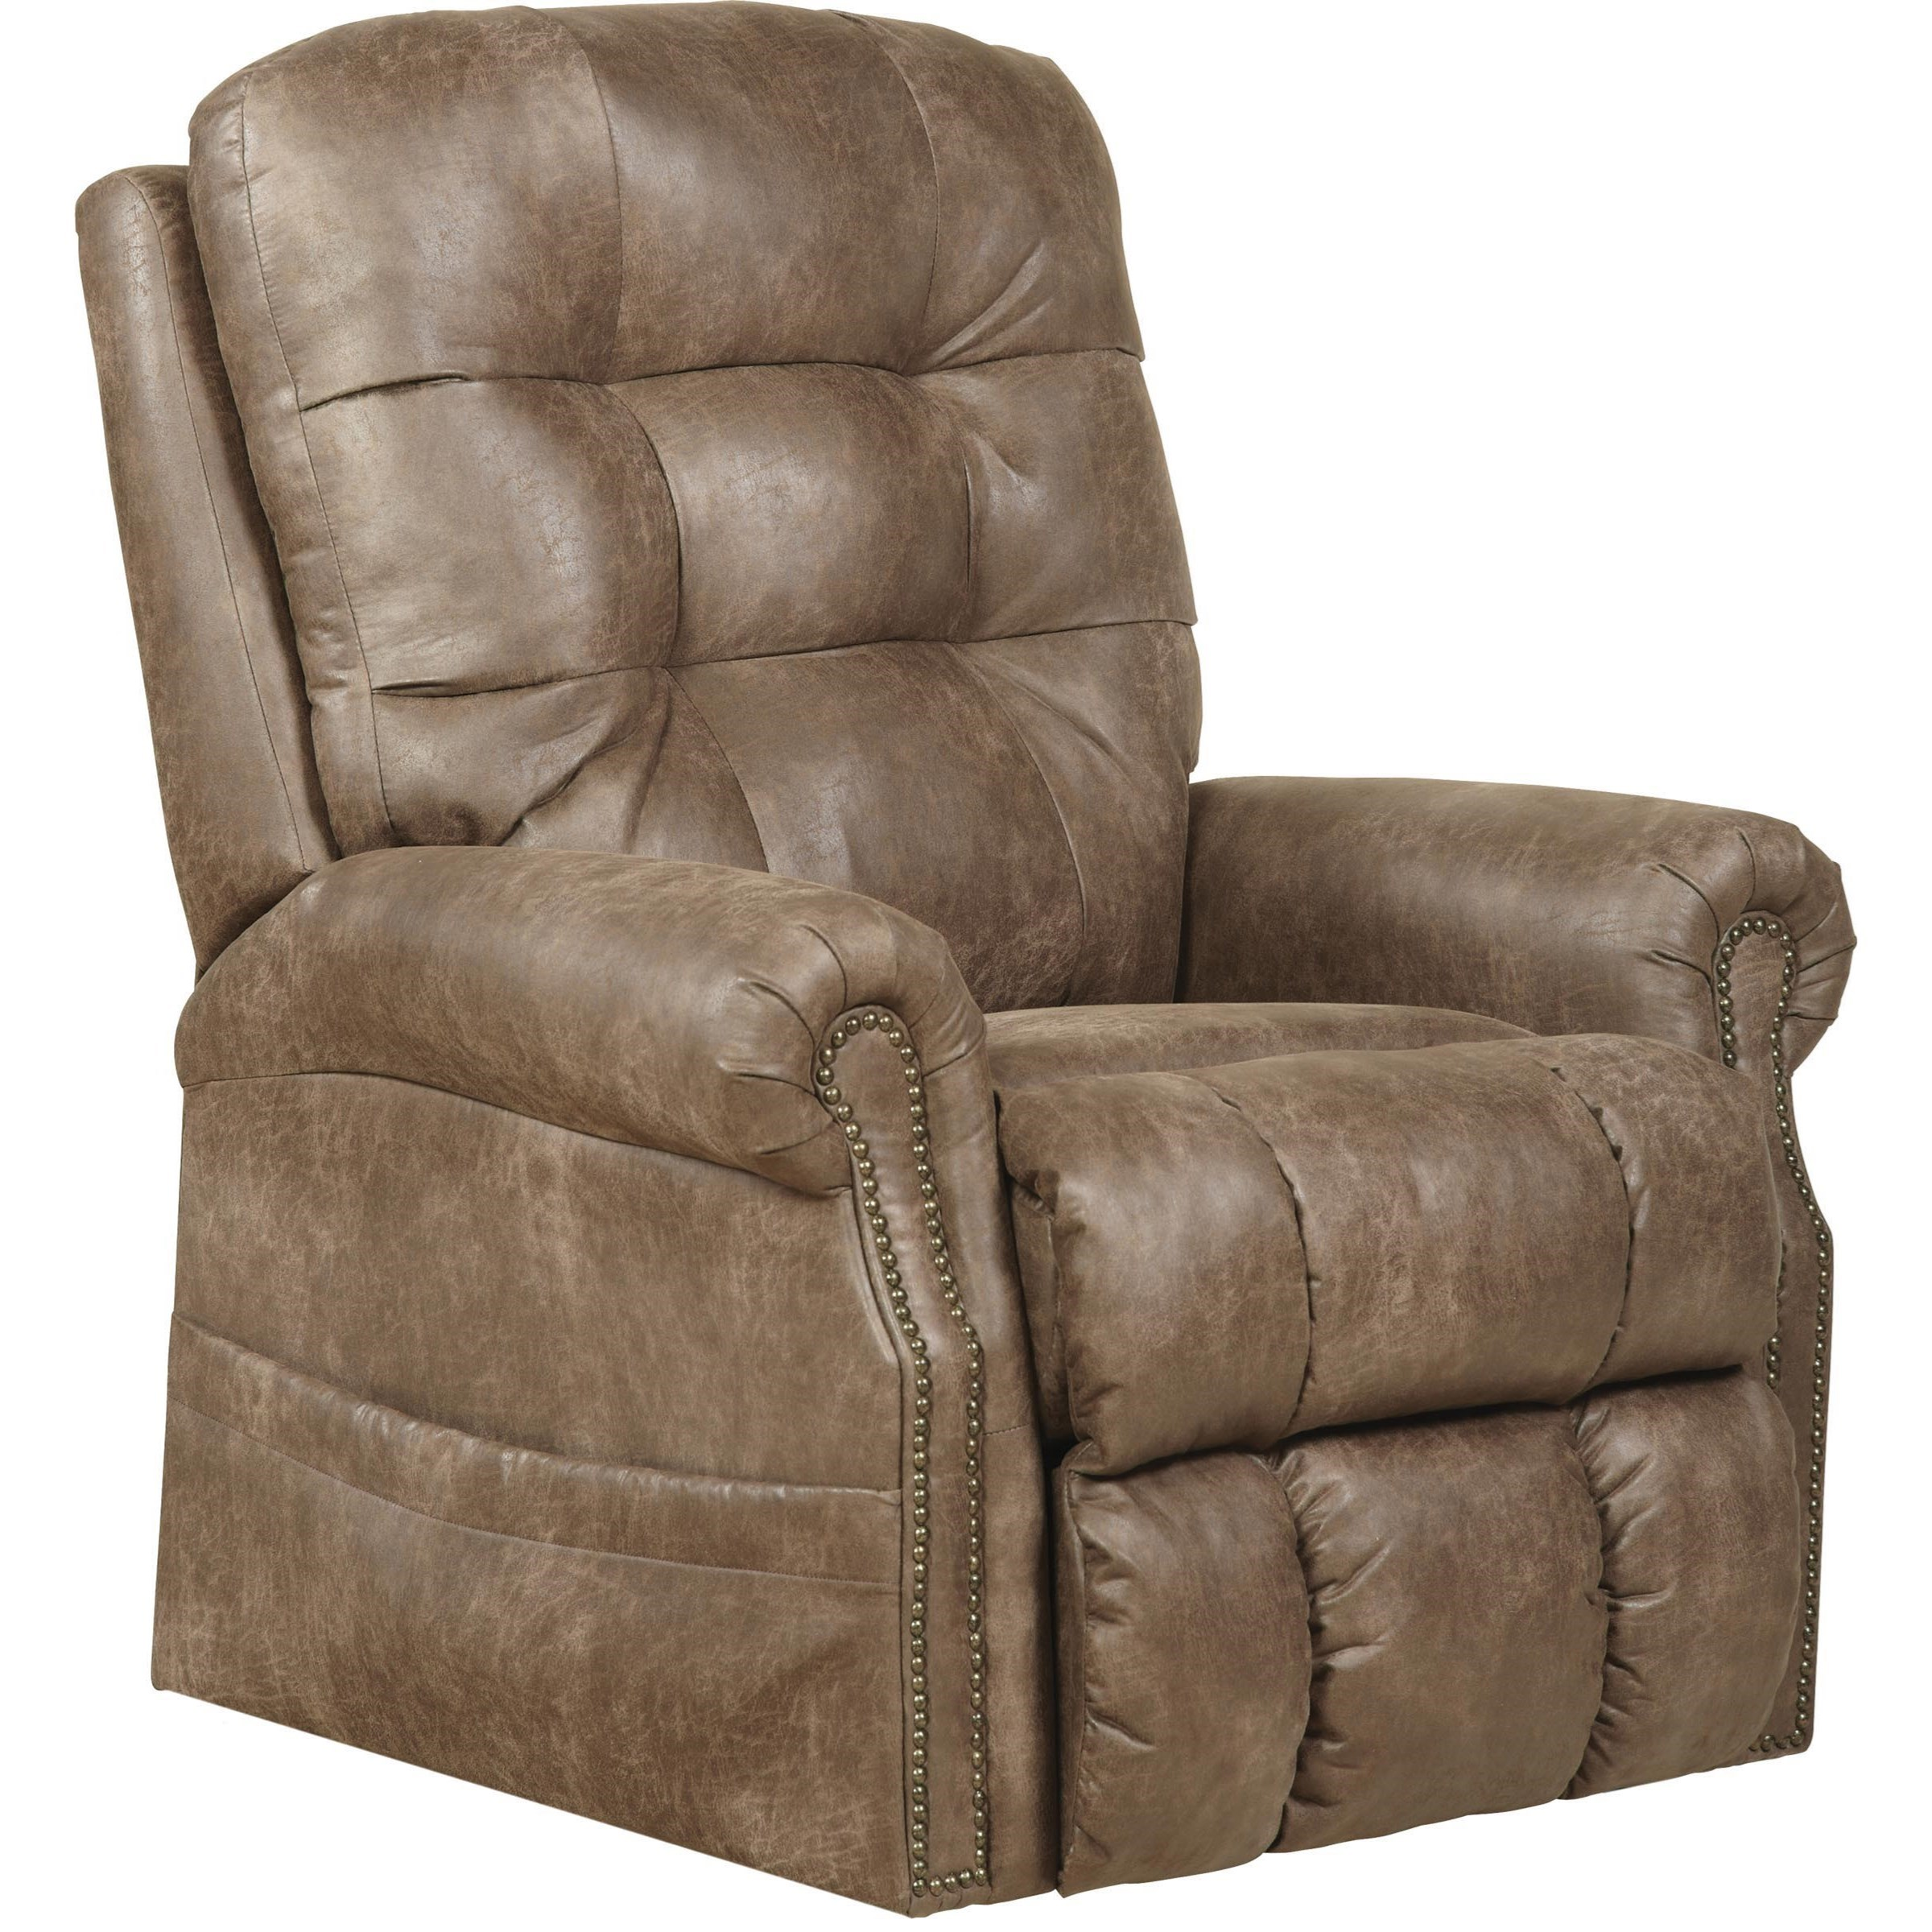 Lift Chairs Recliners Catnapper Motion Chairs And Recliners Ramsey Lift Chair